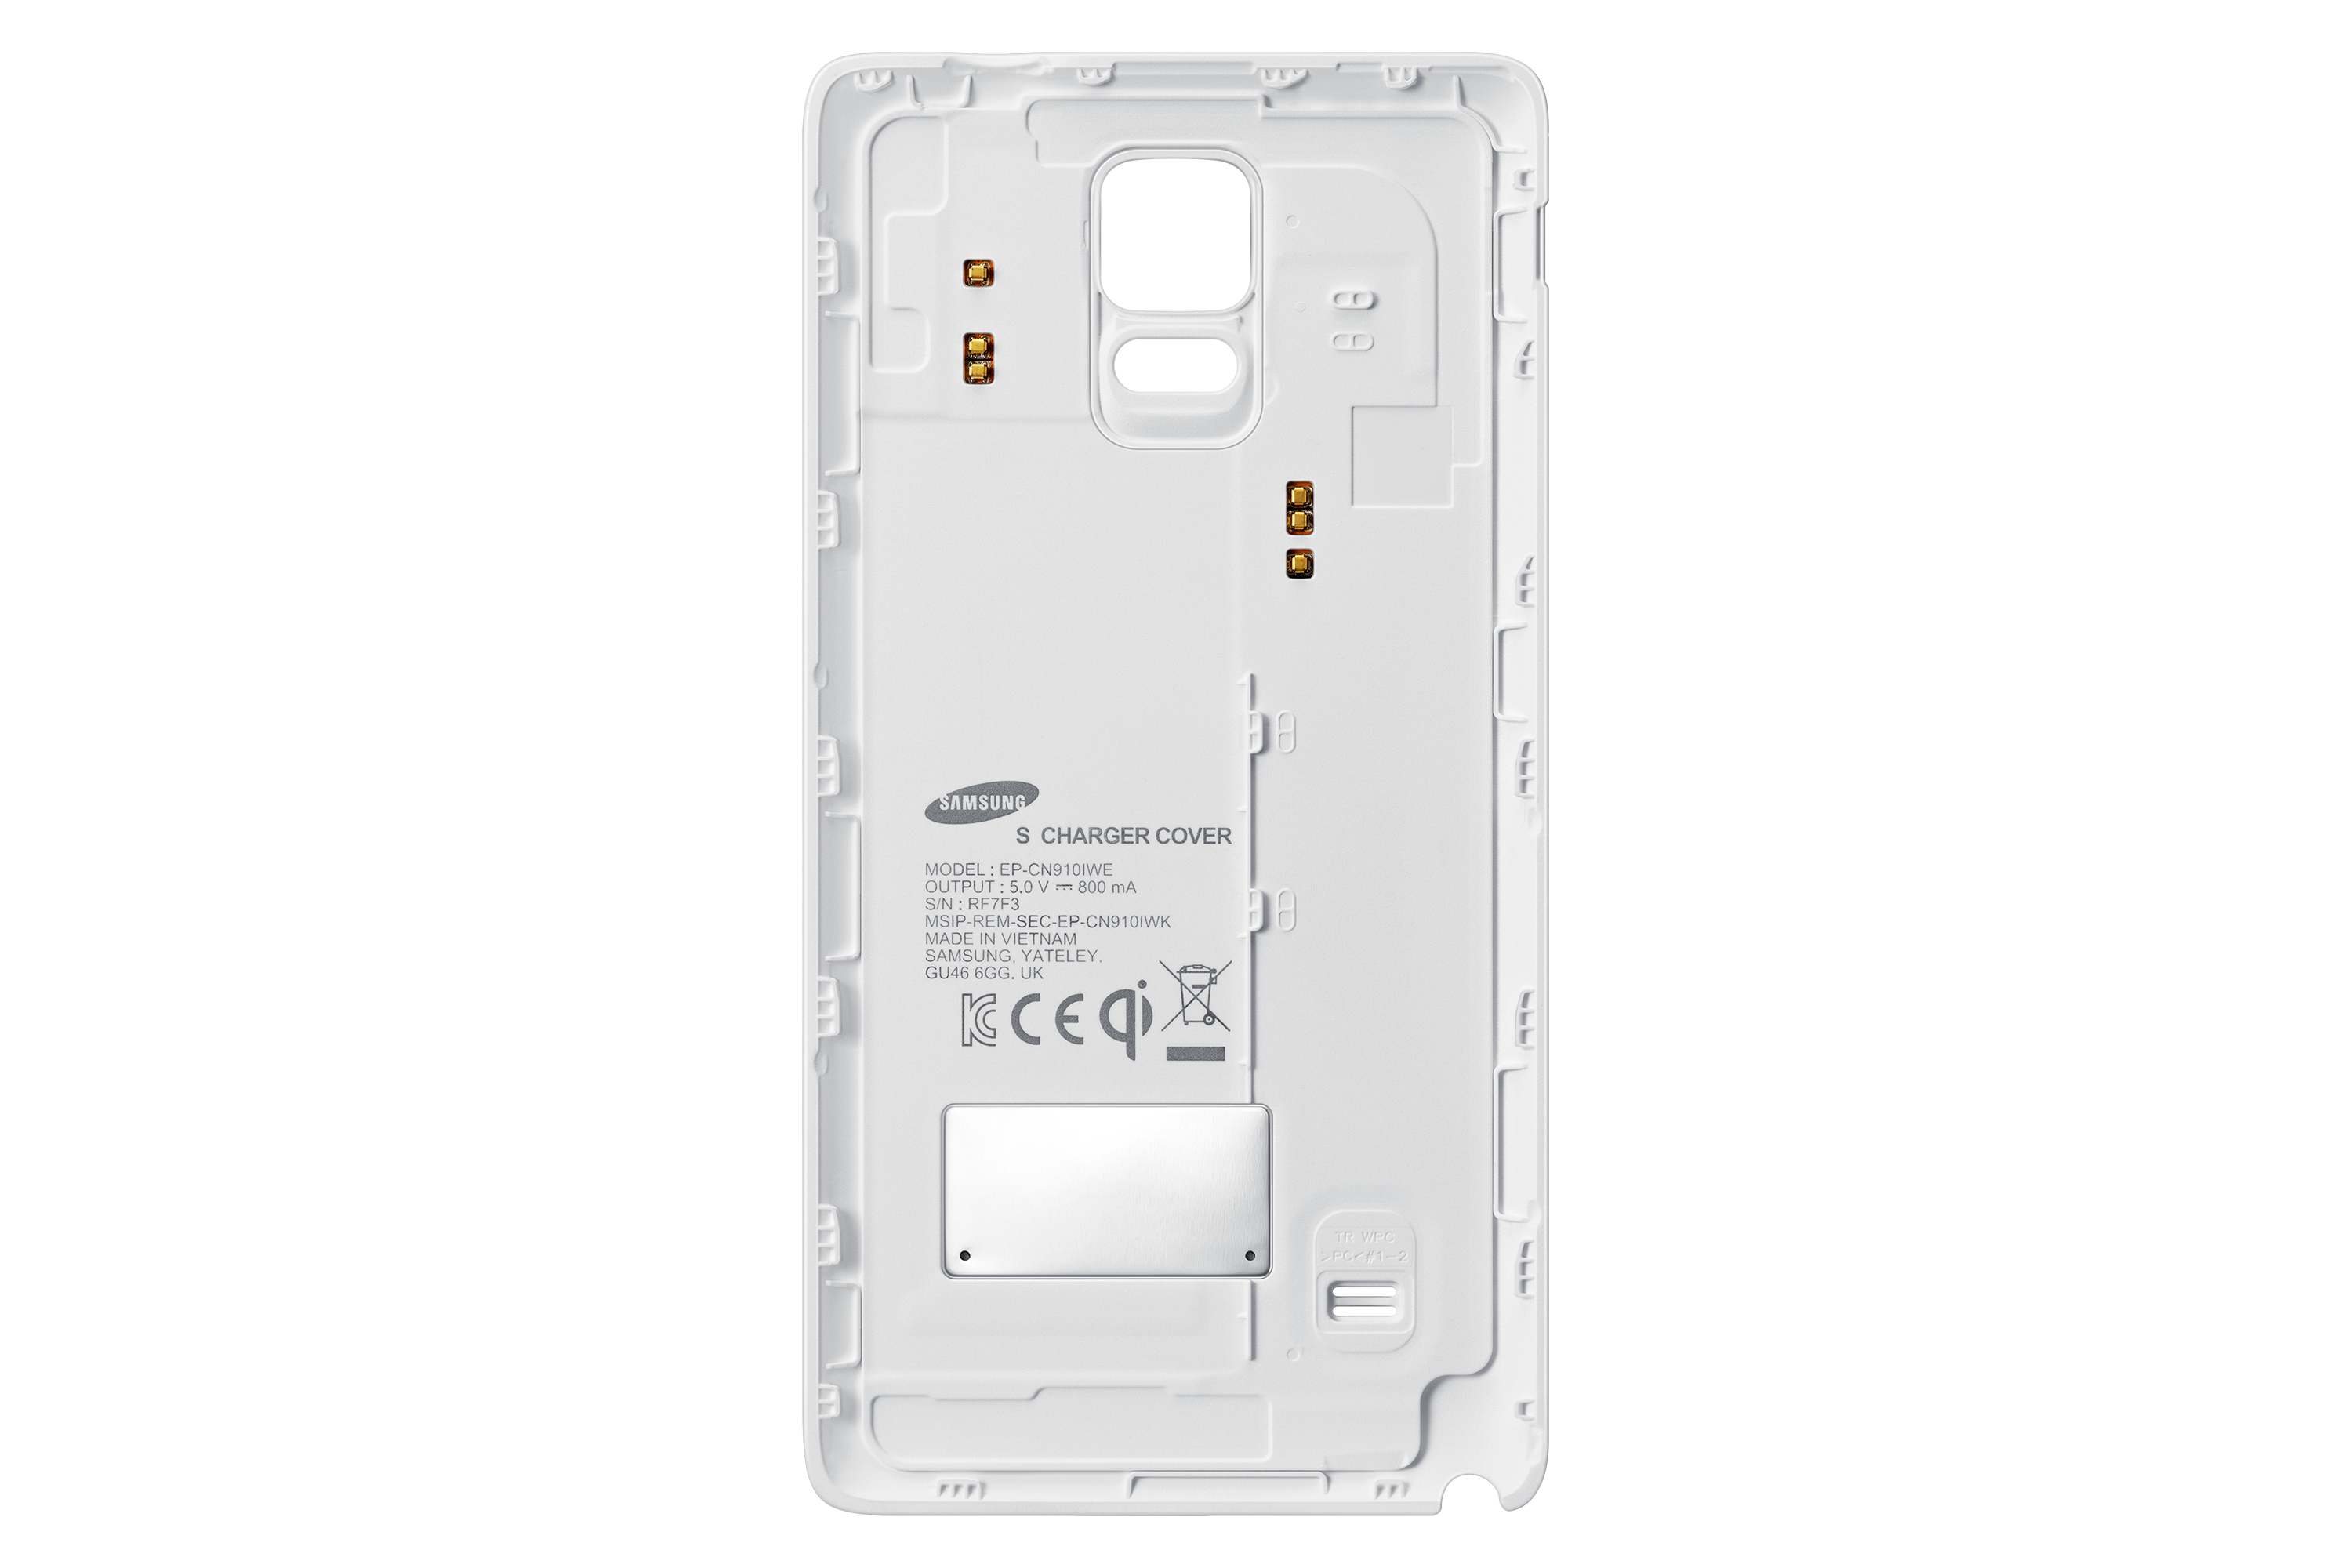 Samsung Galaxy Note 4 Wireless Charging Back Cover (White) | Samsung UK